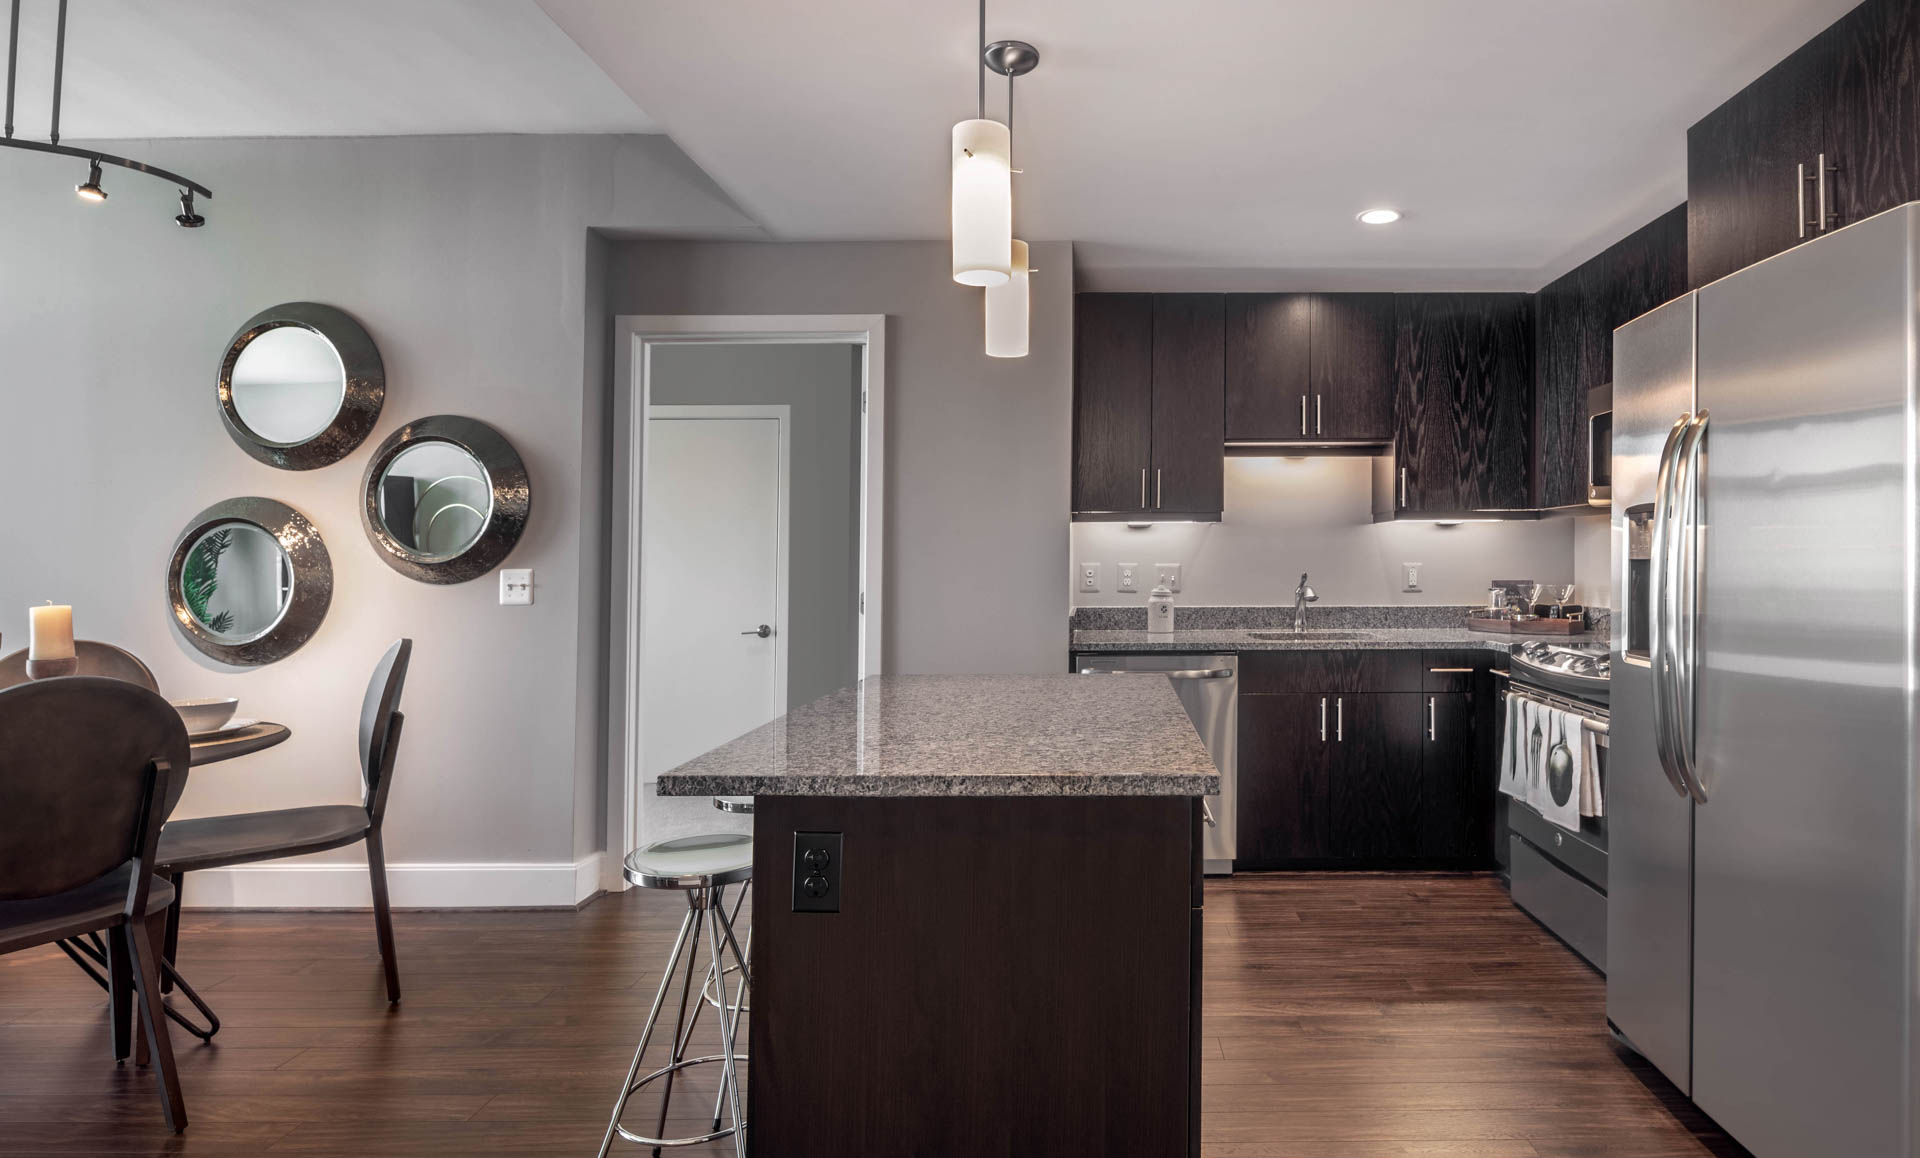 Kitchen with dark wood cabinets, stainless steel appliances, and bar stools at kitchen island